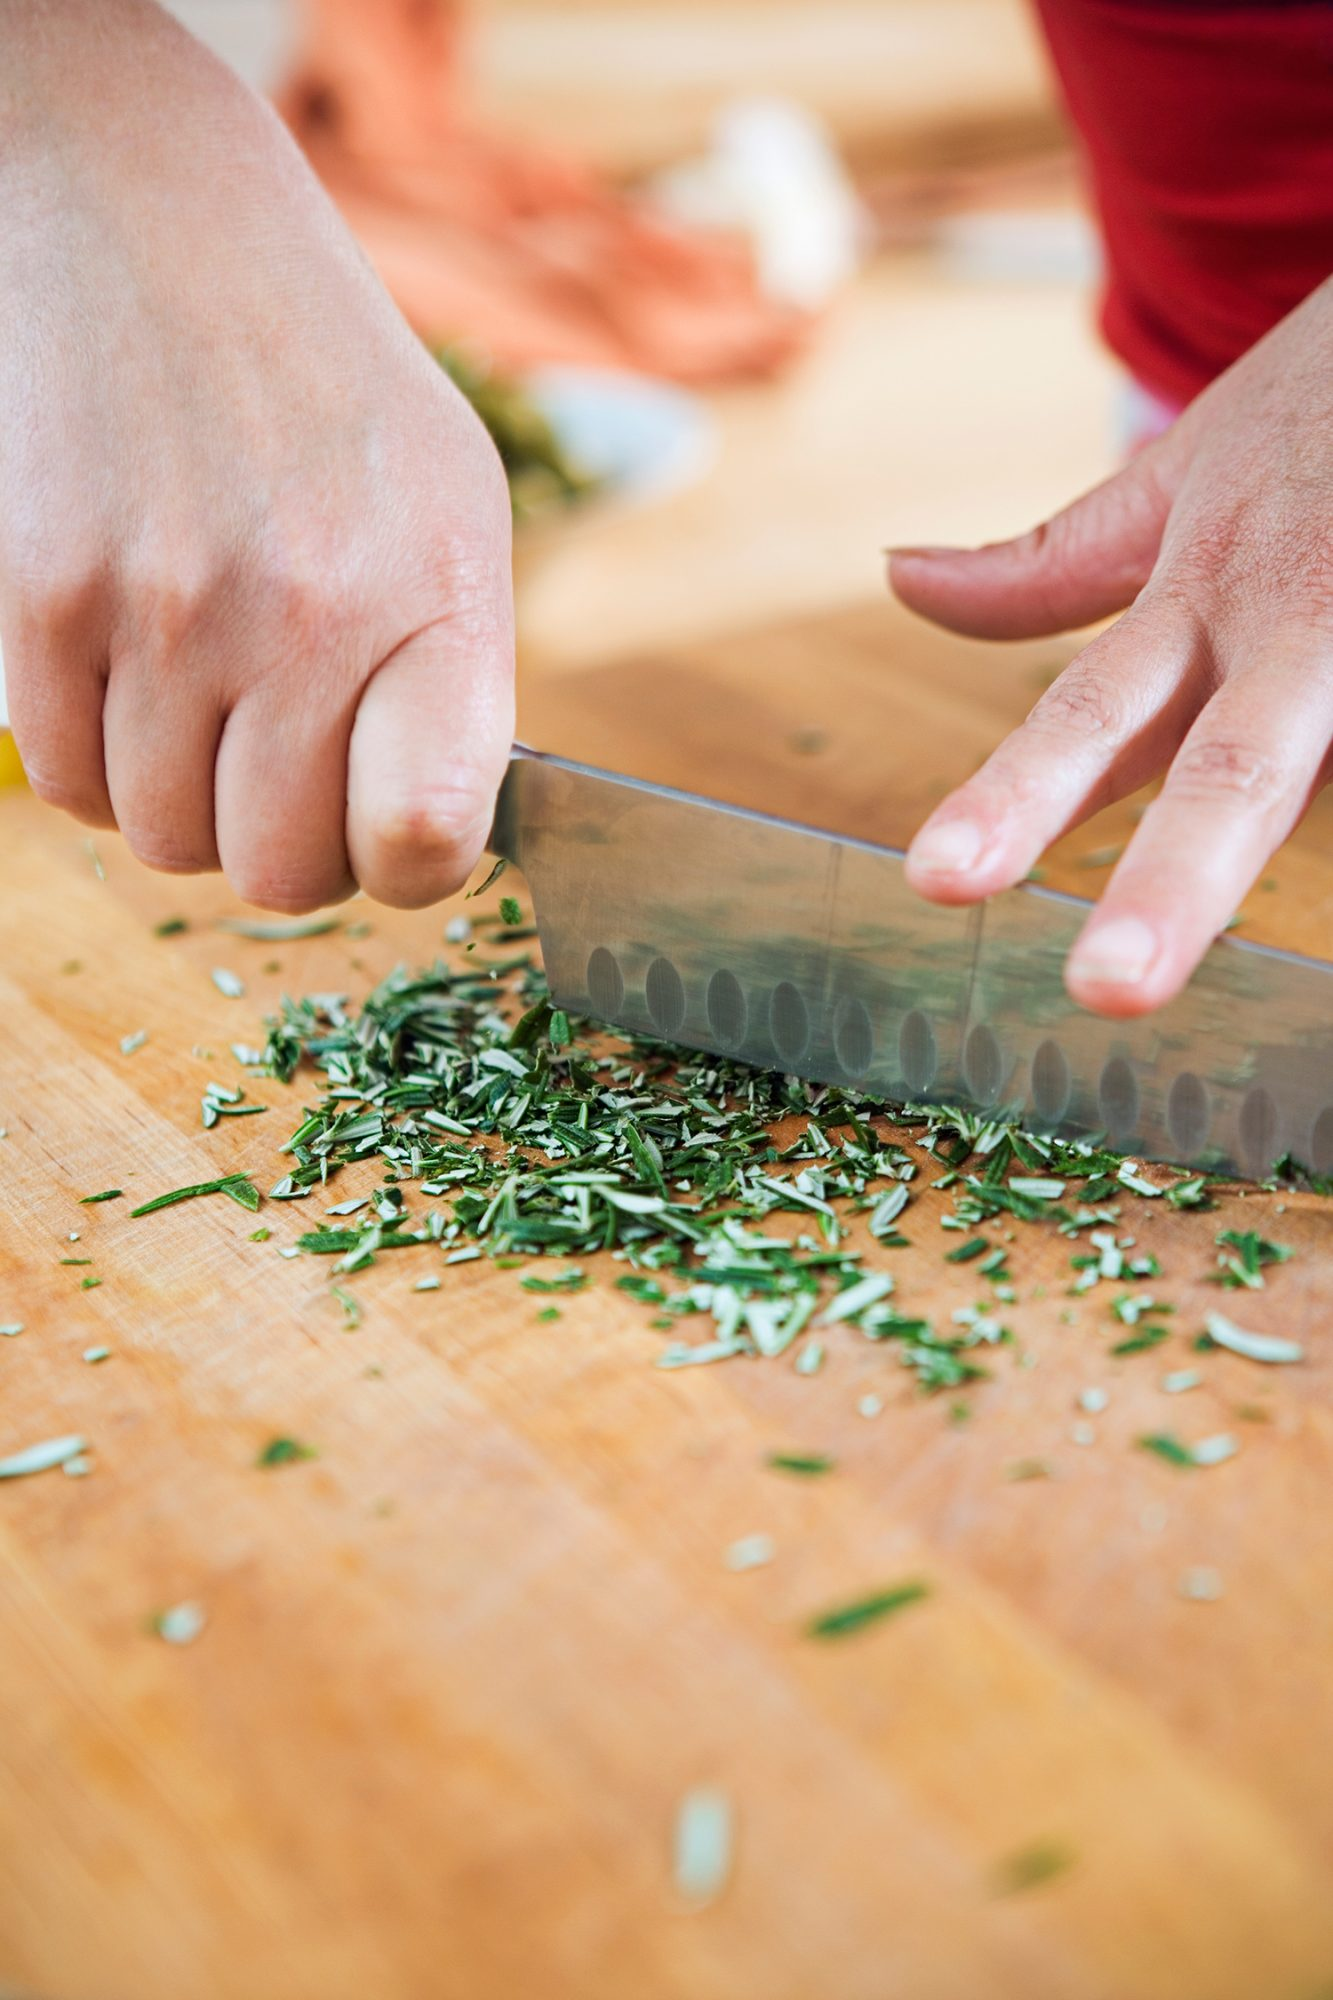 How to Chop Rosemary and Thyme Video and Steps